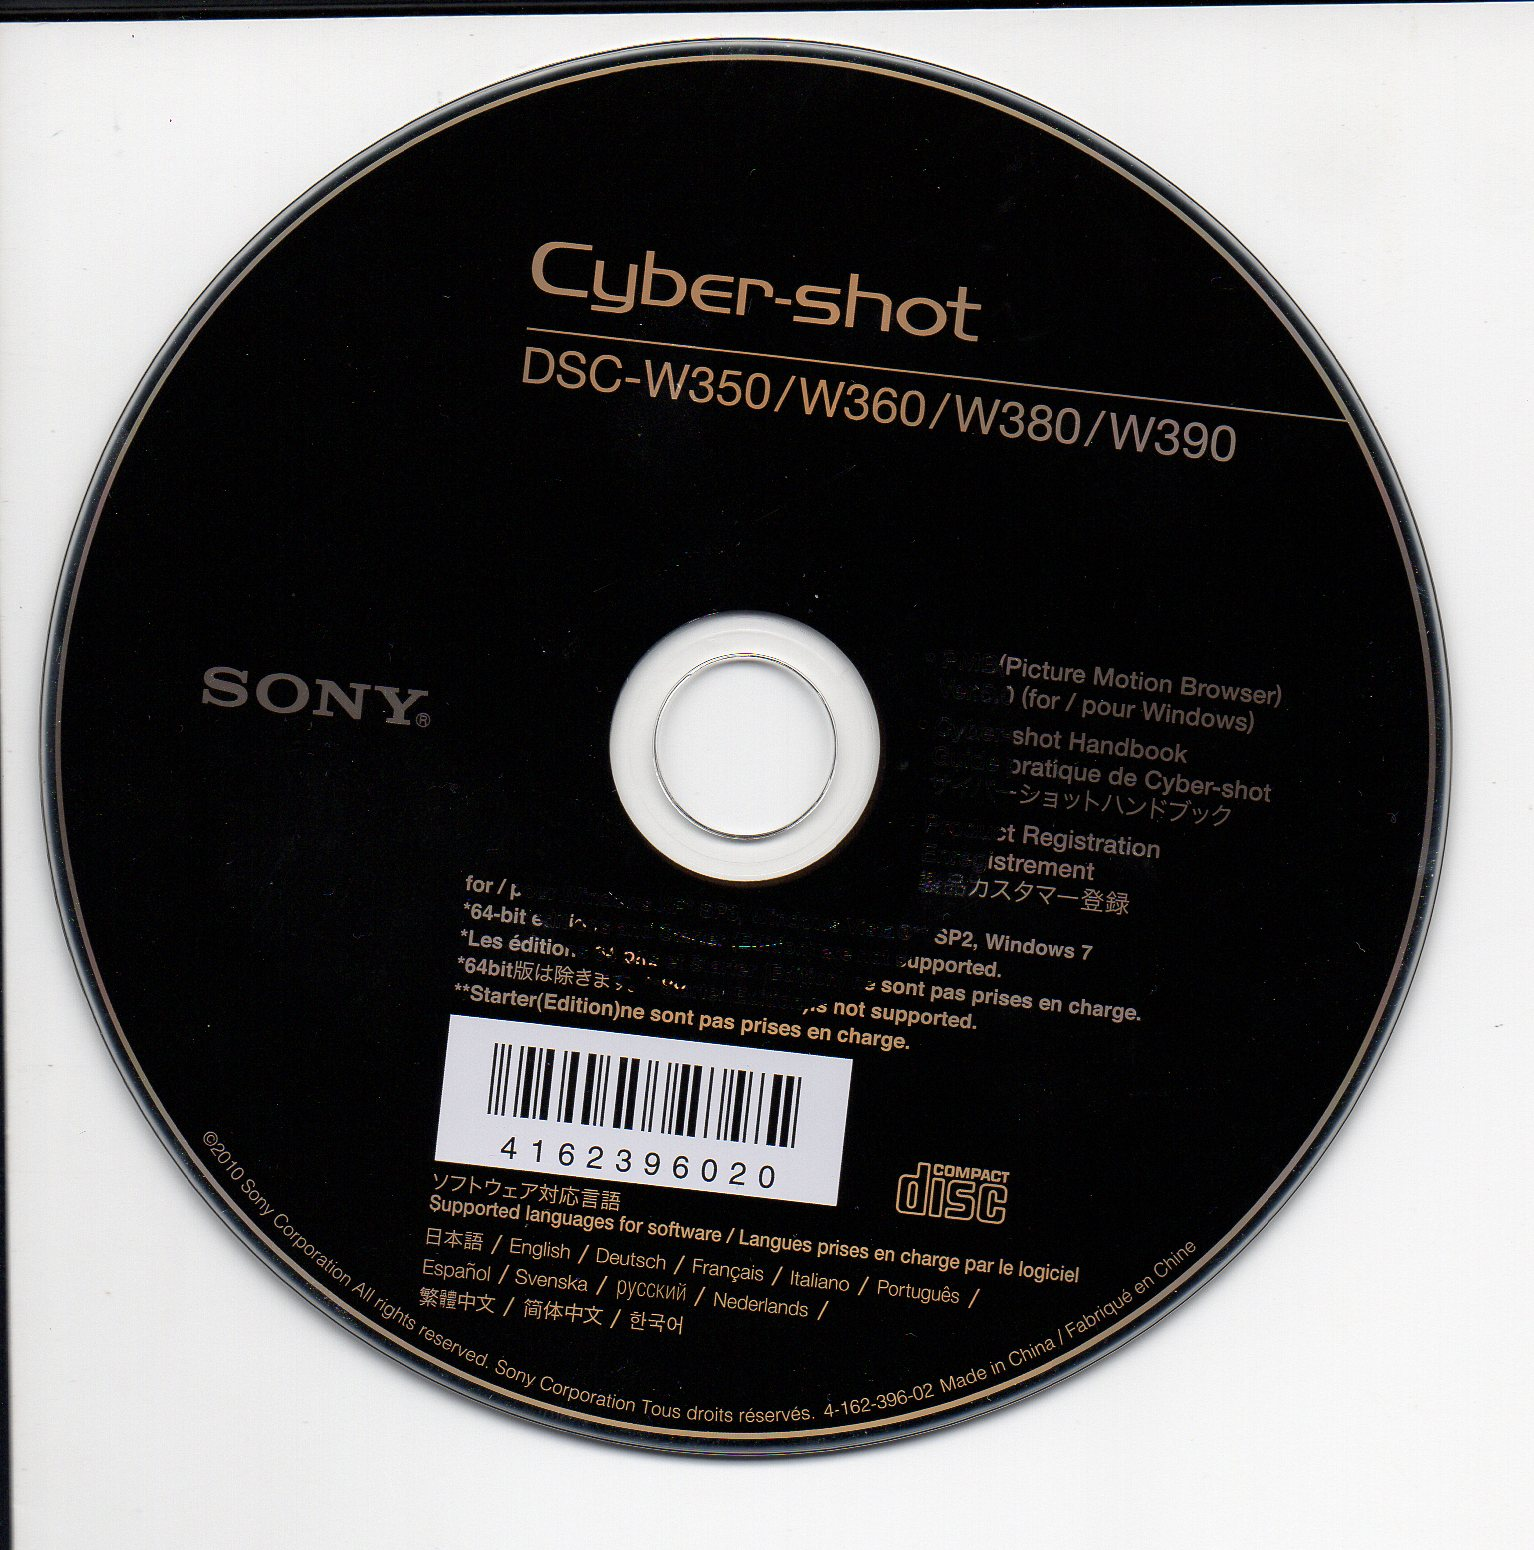 How to retrieve back deleted photos on sony cybershot digital.